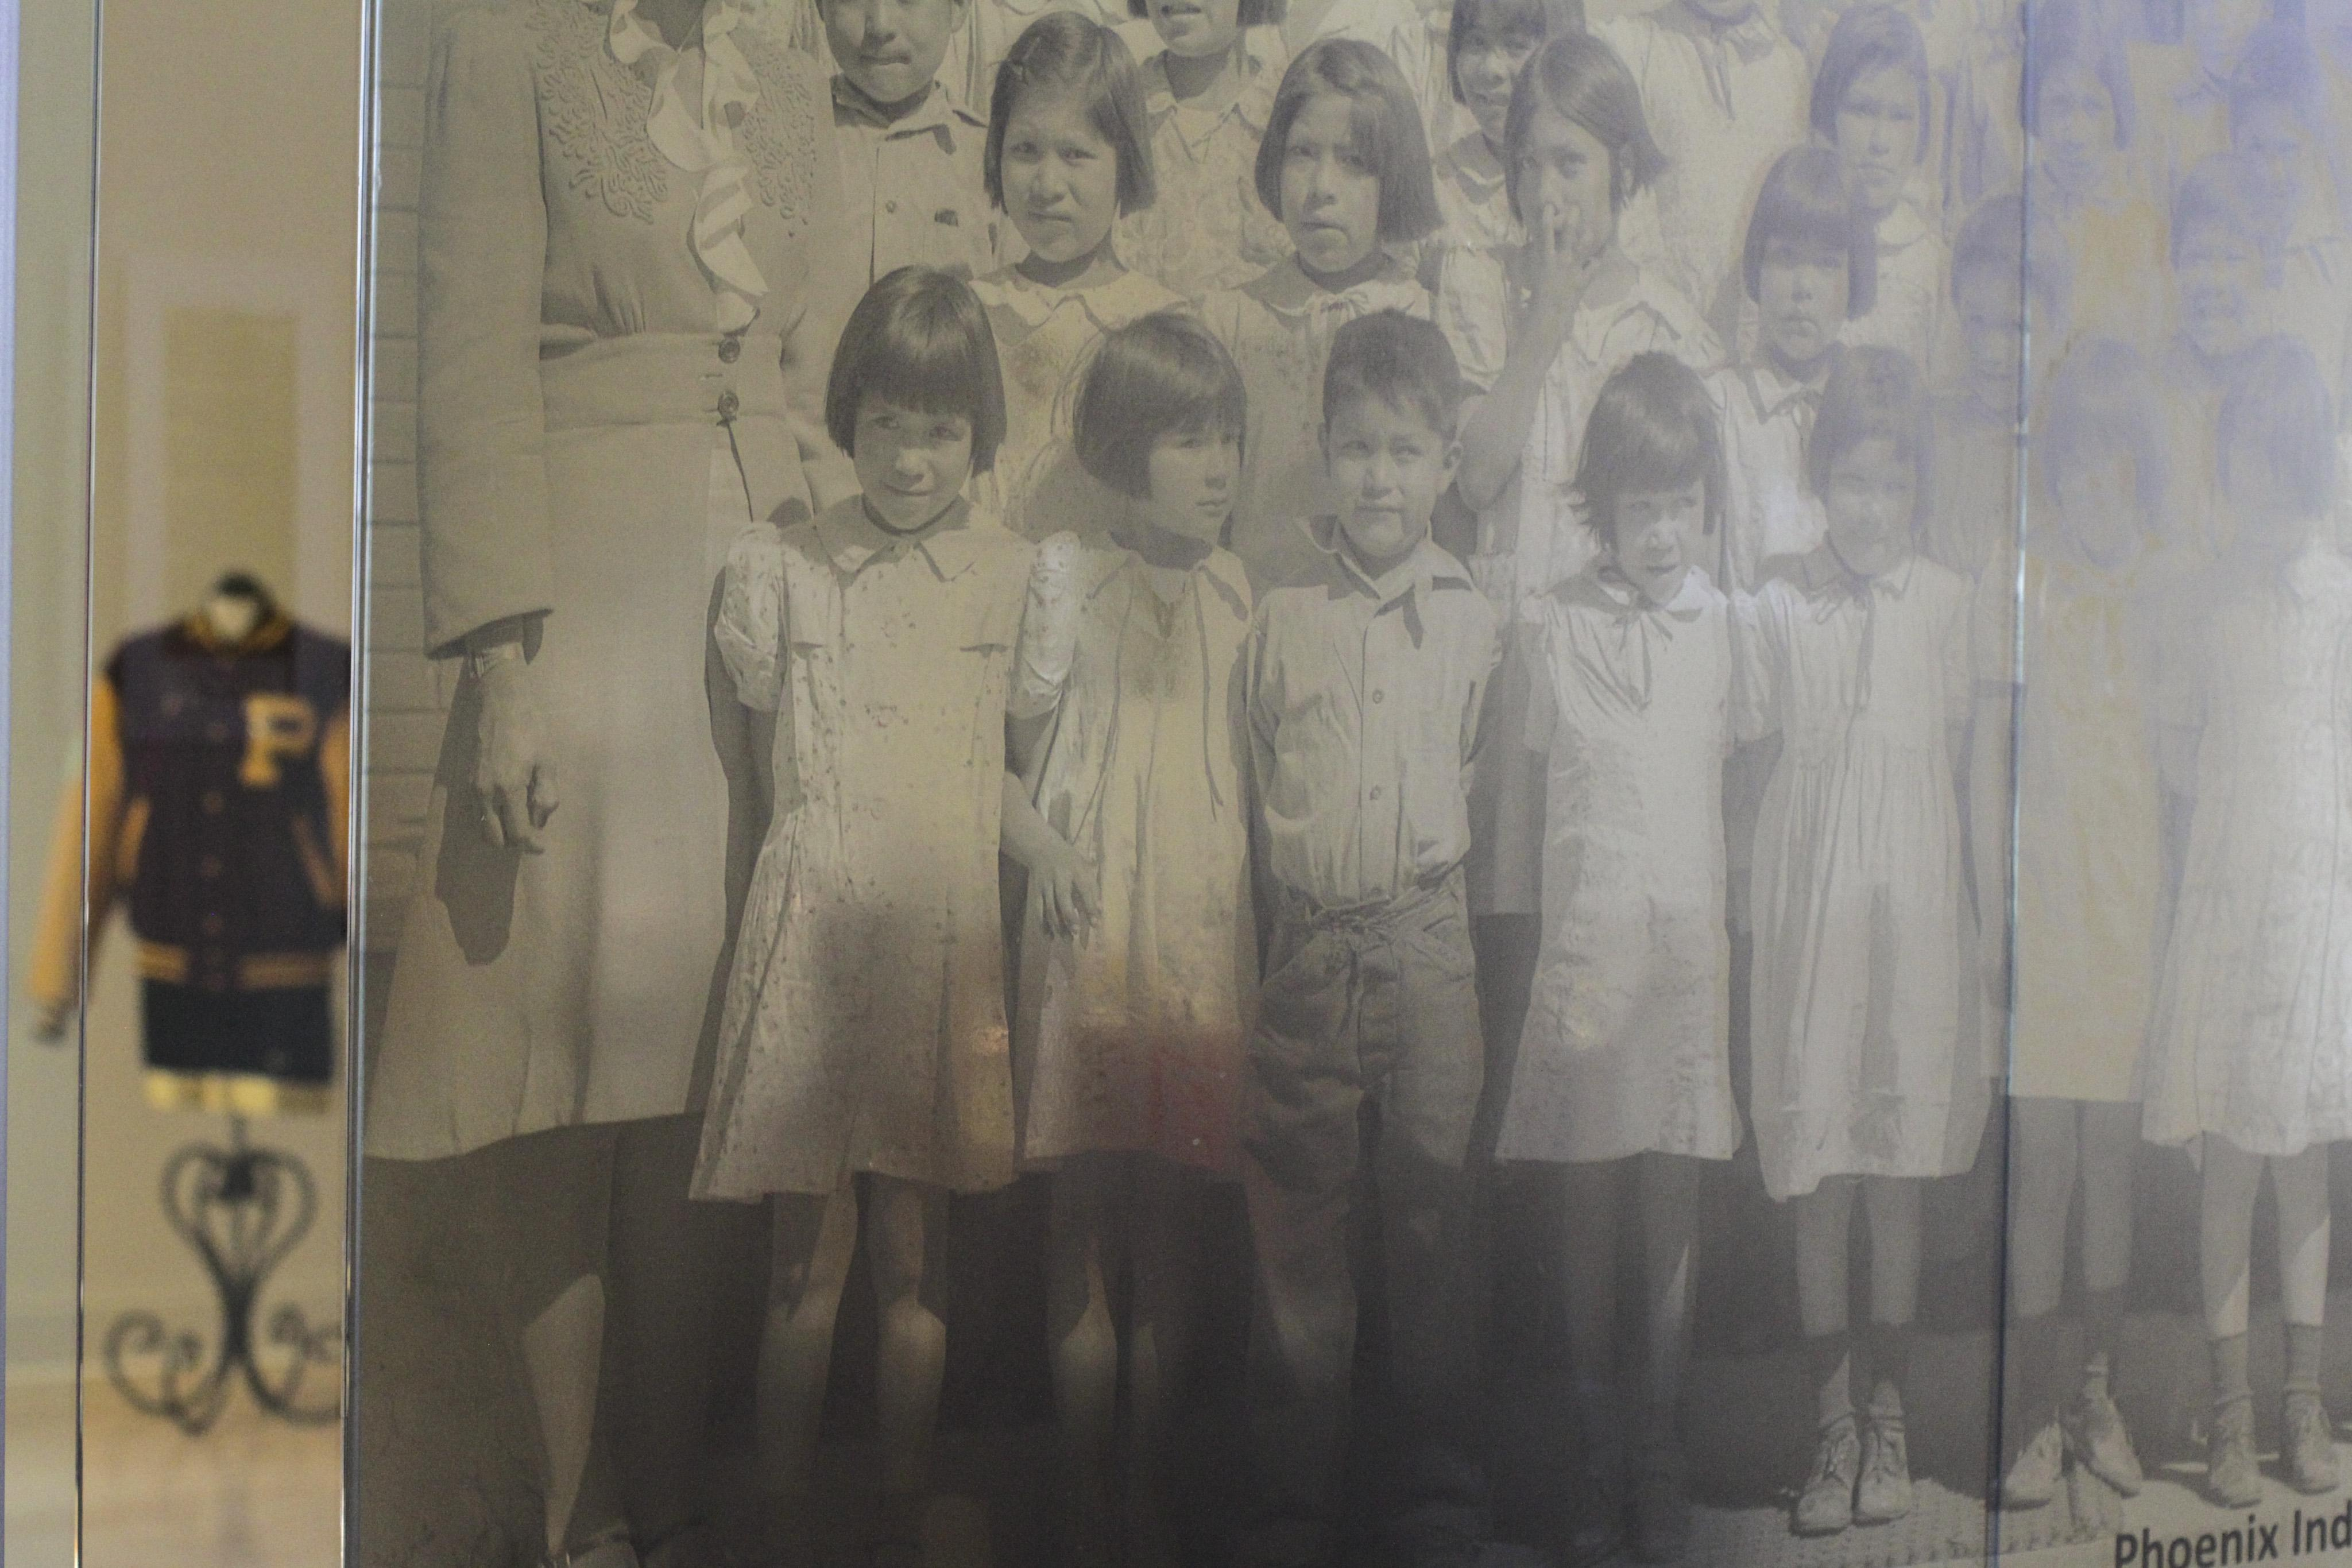 Children who attended Phoenix Indian School in the 1950s